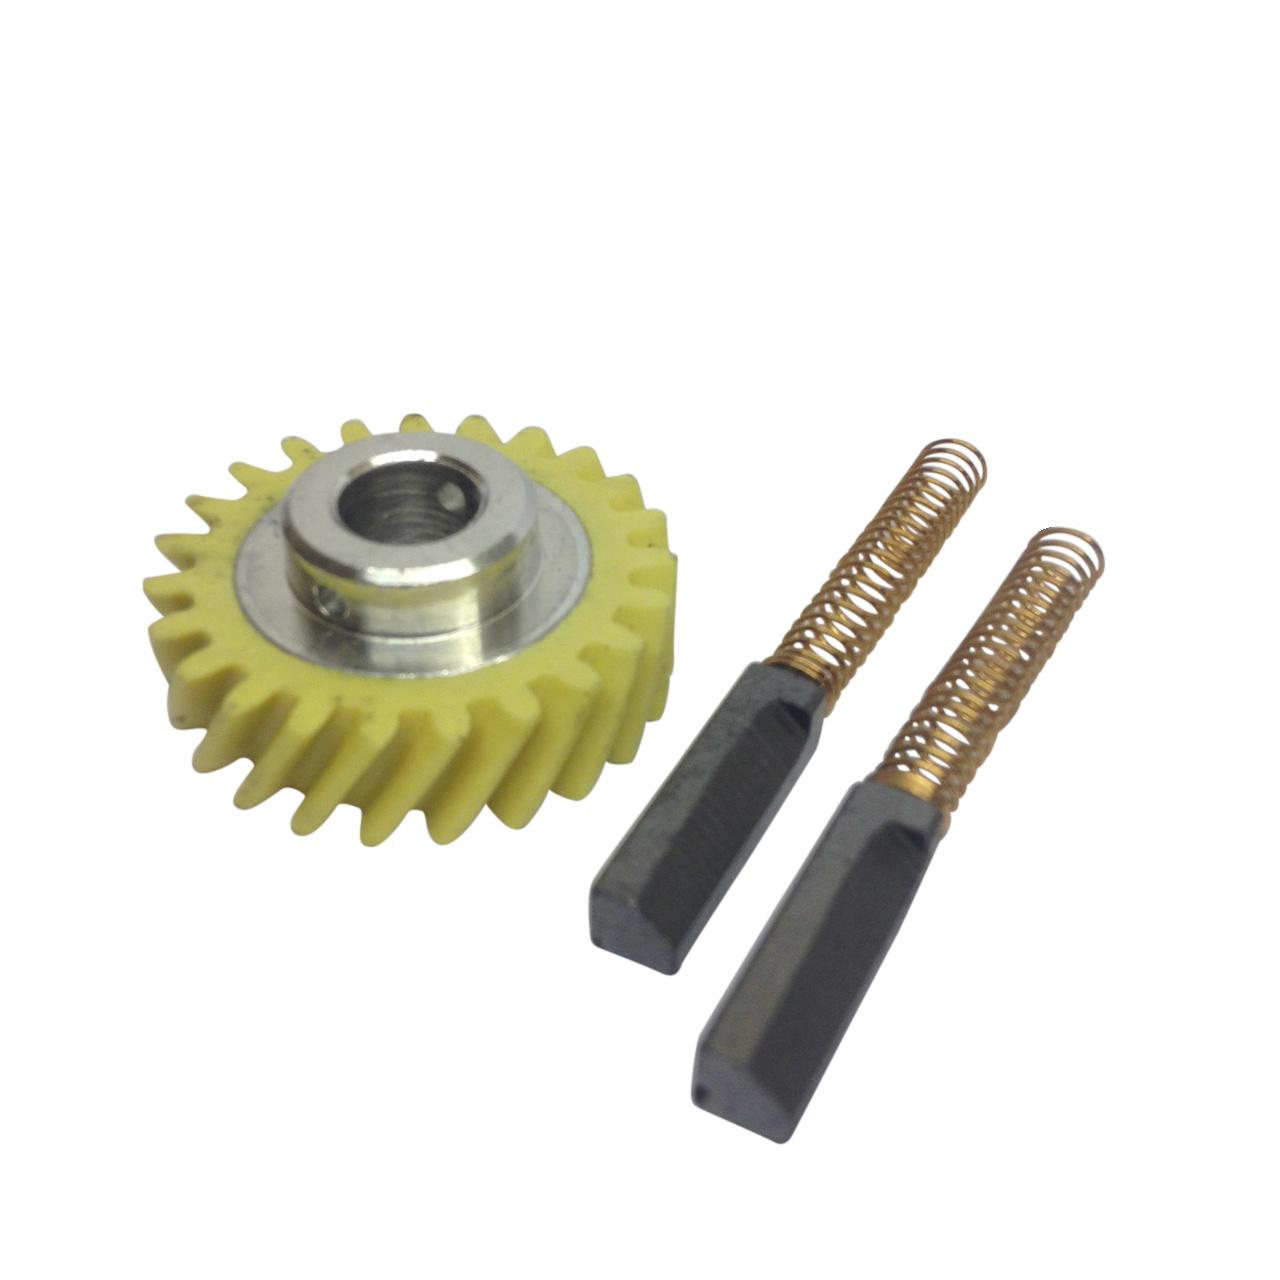 Kitchenaid Stand Mixer Worm Drive Gear W10112253 A Pair